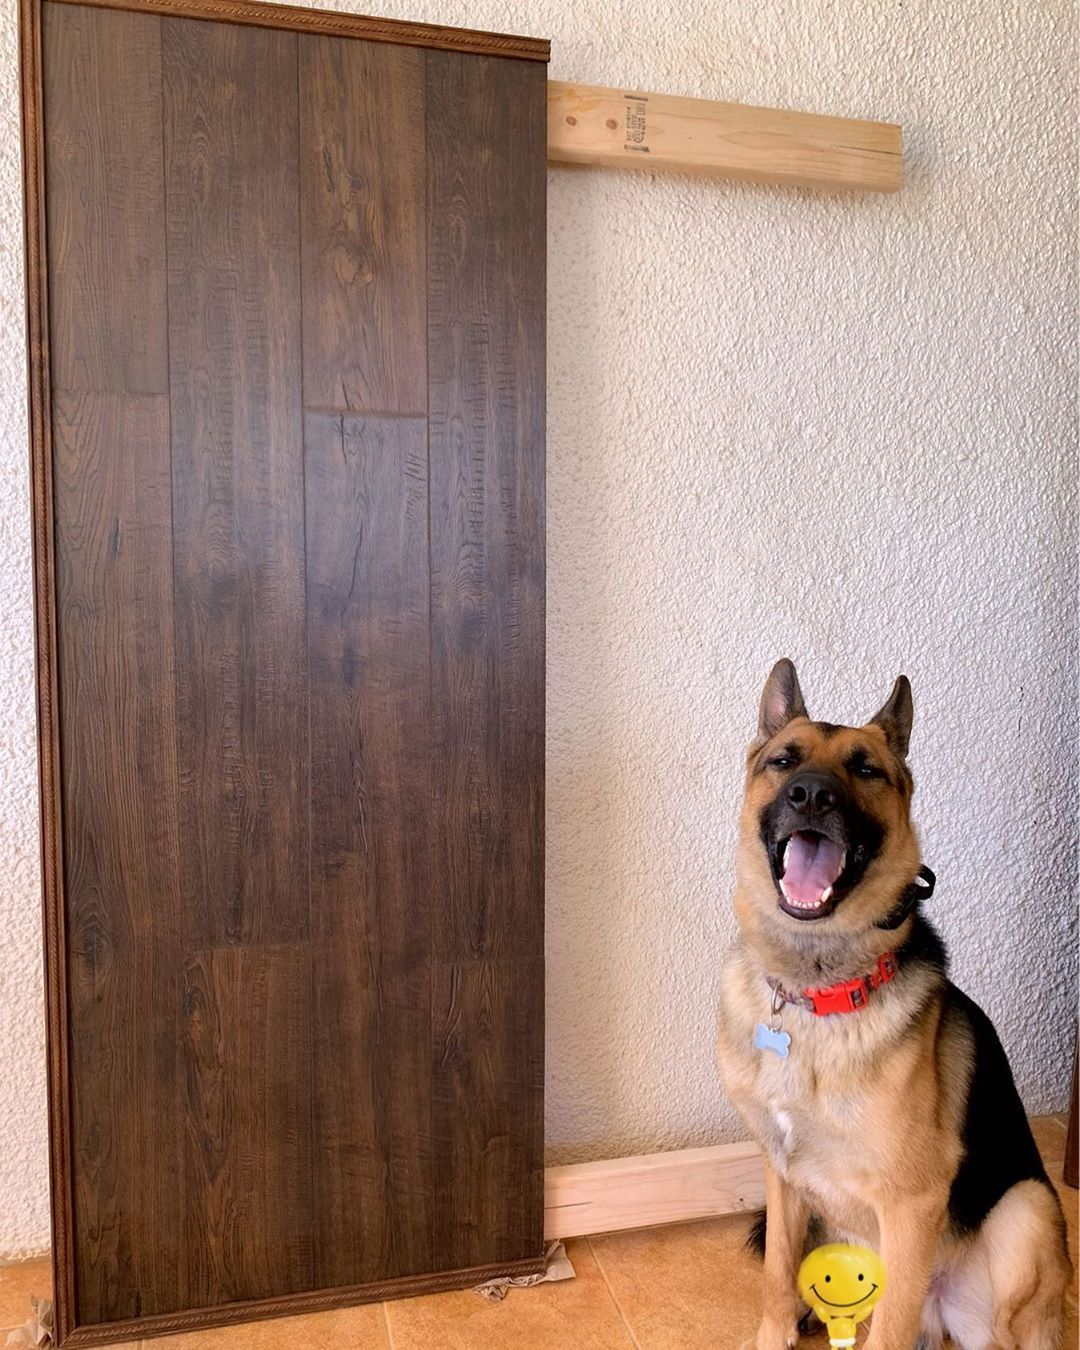 DIY Headboard project update: Yehey pawrents are happy & me the headboard turned out nice & 99% done! Furmom have to pain the legs & then ready to install to our bed! 🙌🏼😁 . . . . #germanshepherd #gsd #gsdofinstagram #mansbestfriend #happydog #guamdogs #headboardproject #diy #queensizeheadboard #homeproject #furbaby #dog #dogs #dogsarefamily #ilovemydog #ilovedogs #doglover #gsdlover #petsarefamily #furmom #furmommy #bigpaws #adorabledog